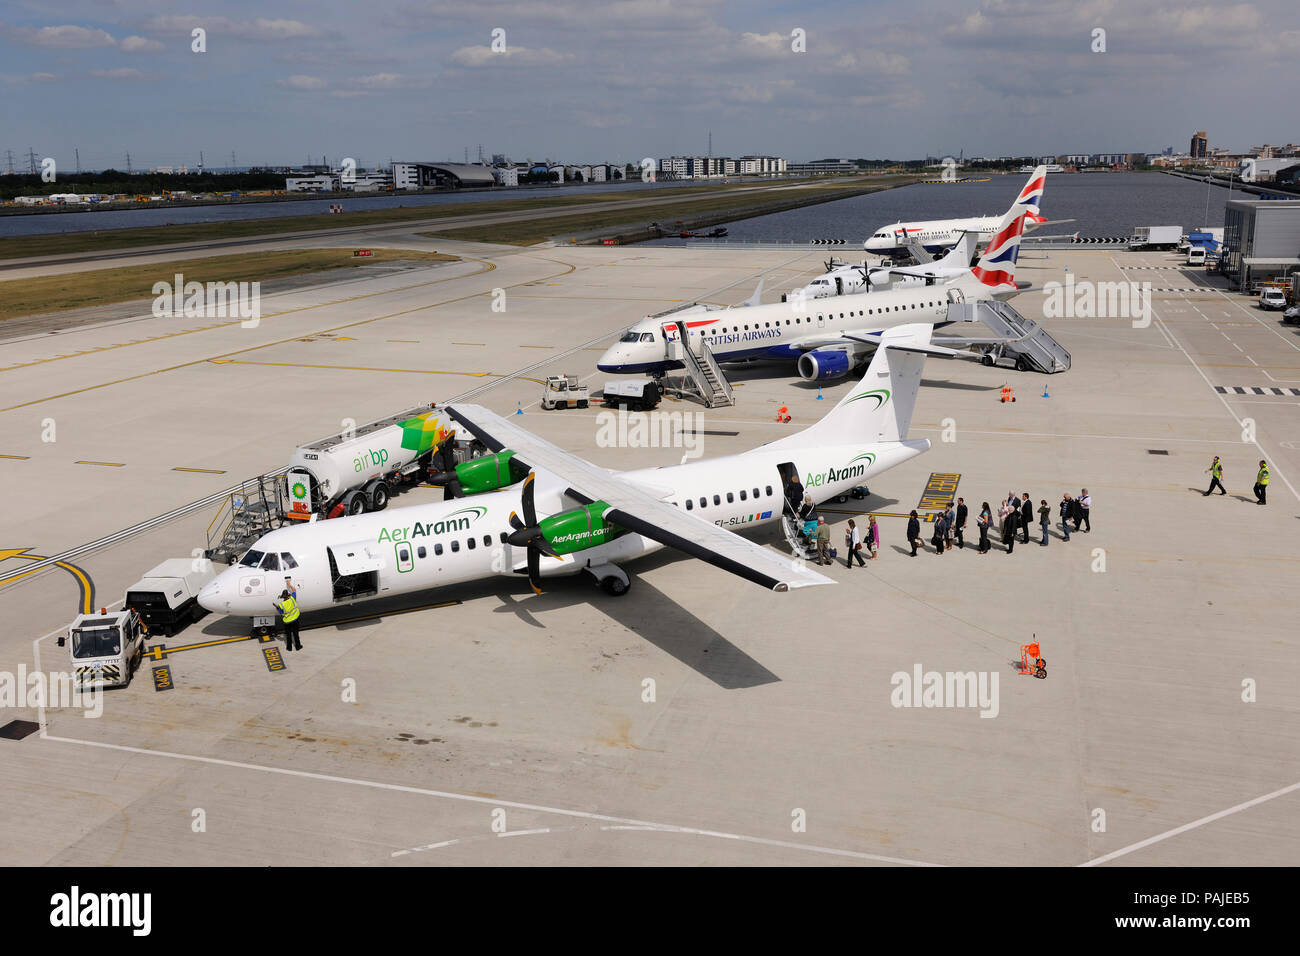 passengers with carry-on bags boarding an Aer Arann ATR 72-200 with Air BP refuelling bowser, British Airways BA CityFlyer Embraer 190, Scot Airways D - Stock Image